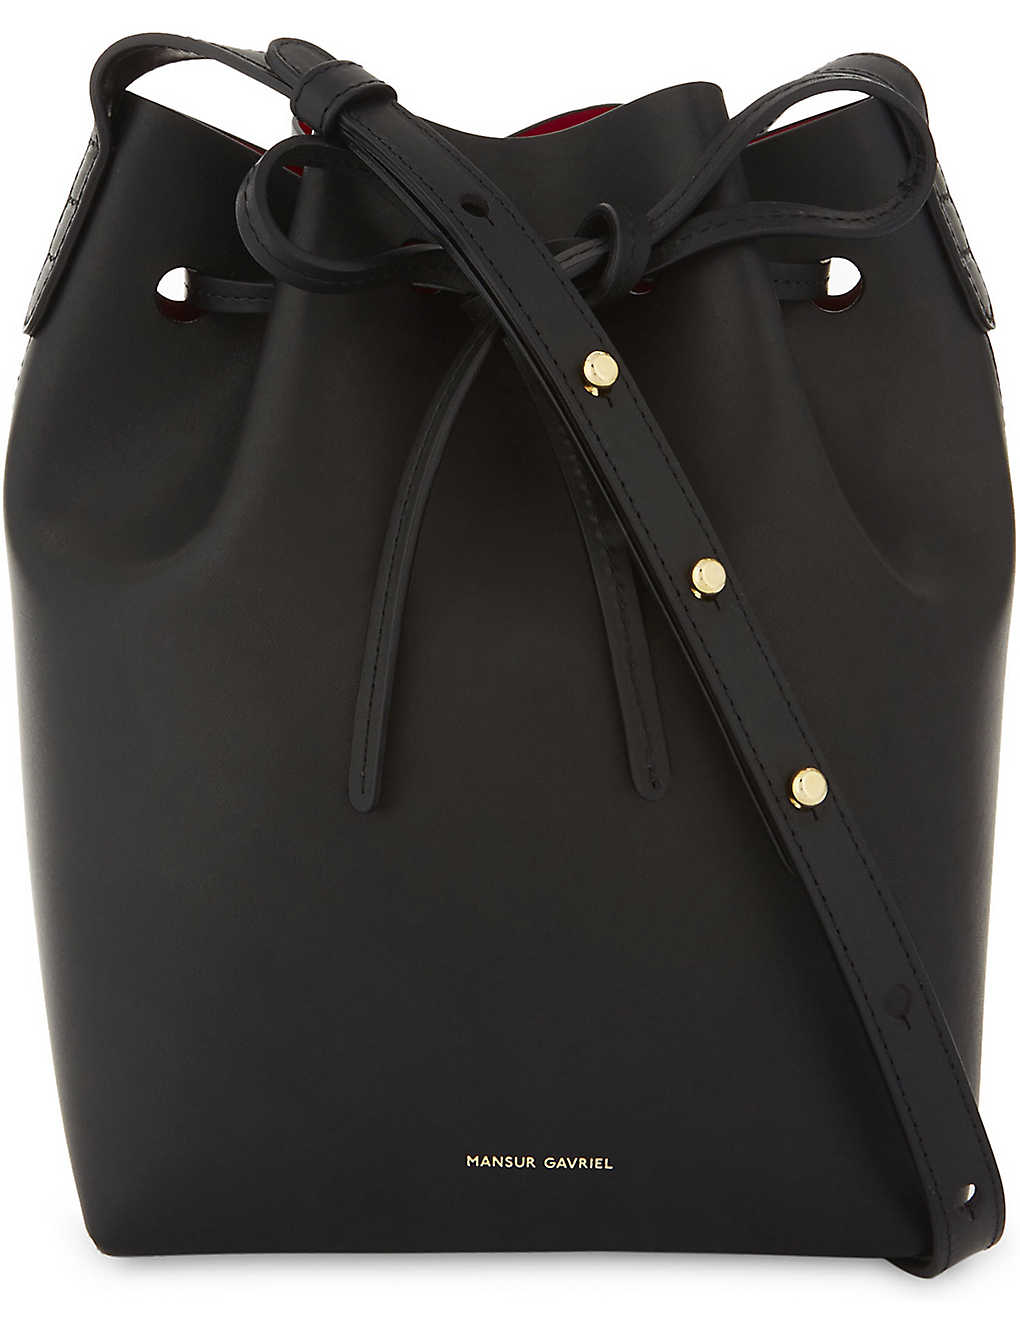 0d2e8f3a9772 MANSUR GAVRIEL - Mini leather bucket bag | Selfridges.com